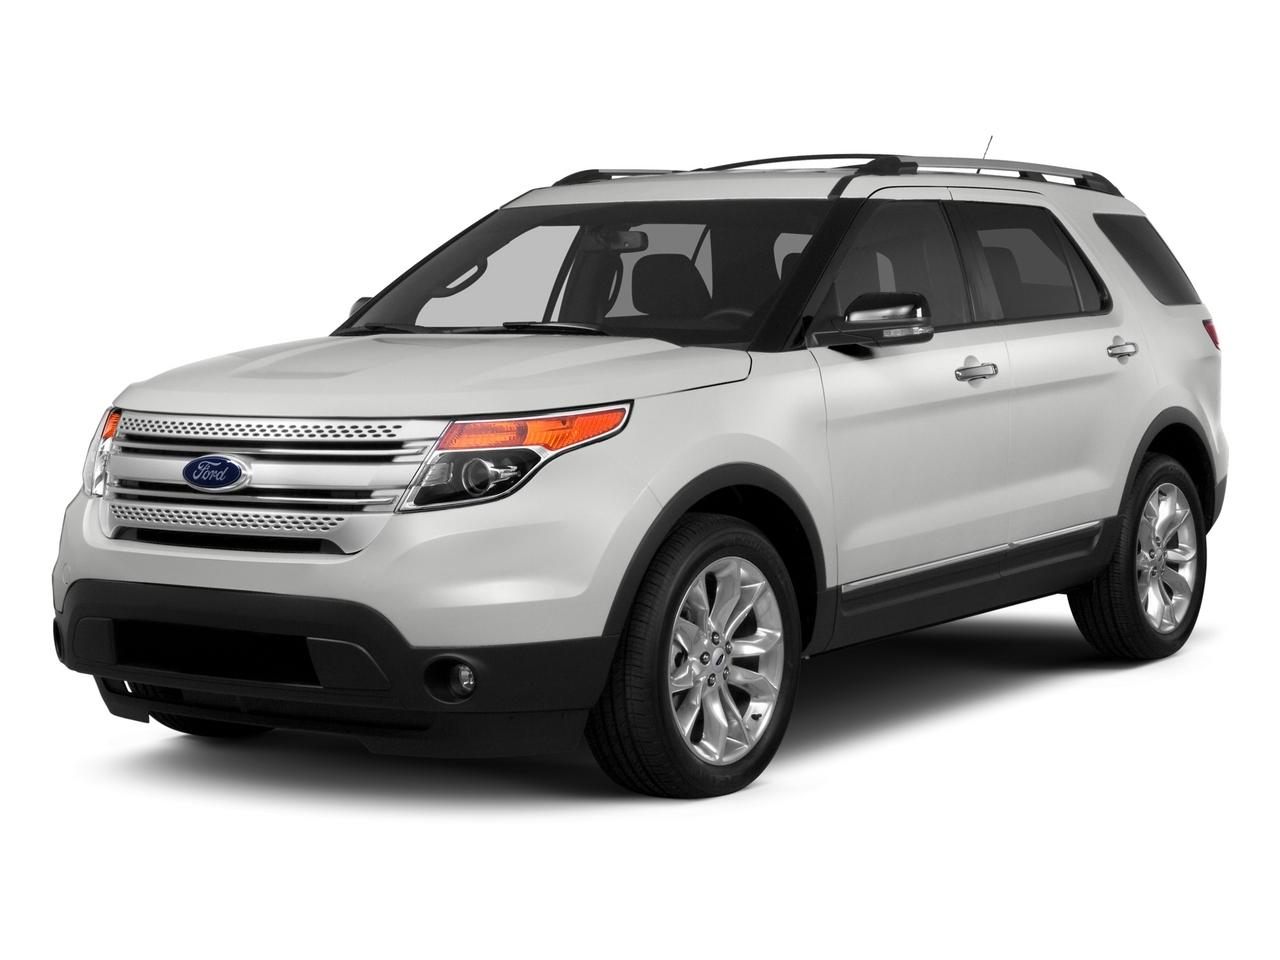 2015 Ford Explorer Vehicle Photo in Plainfield, IL 60586